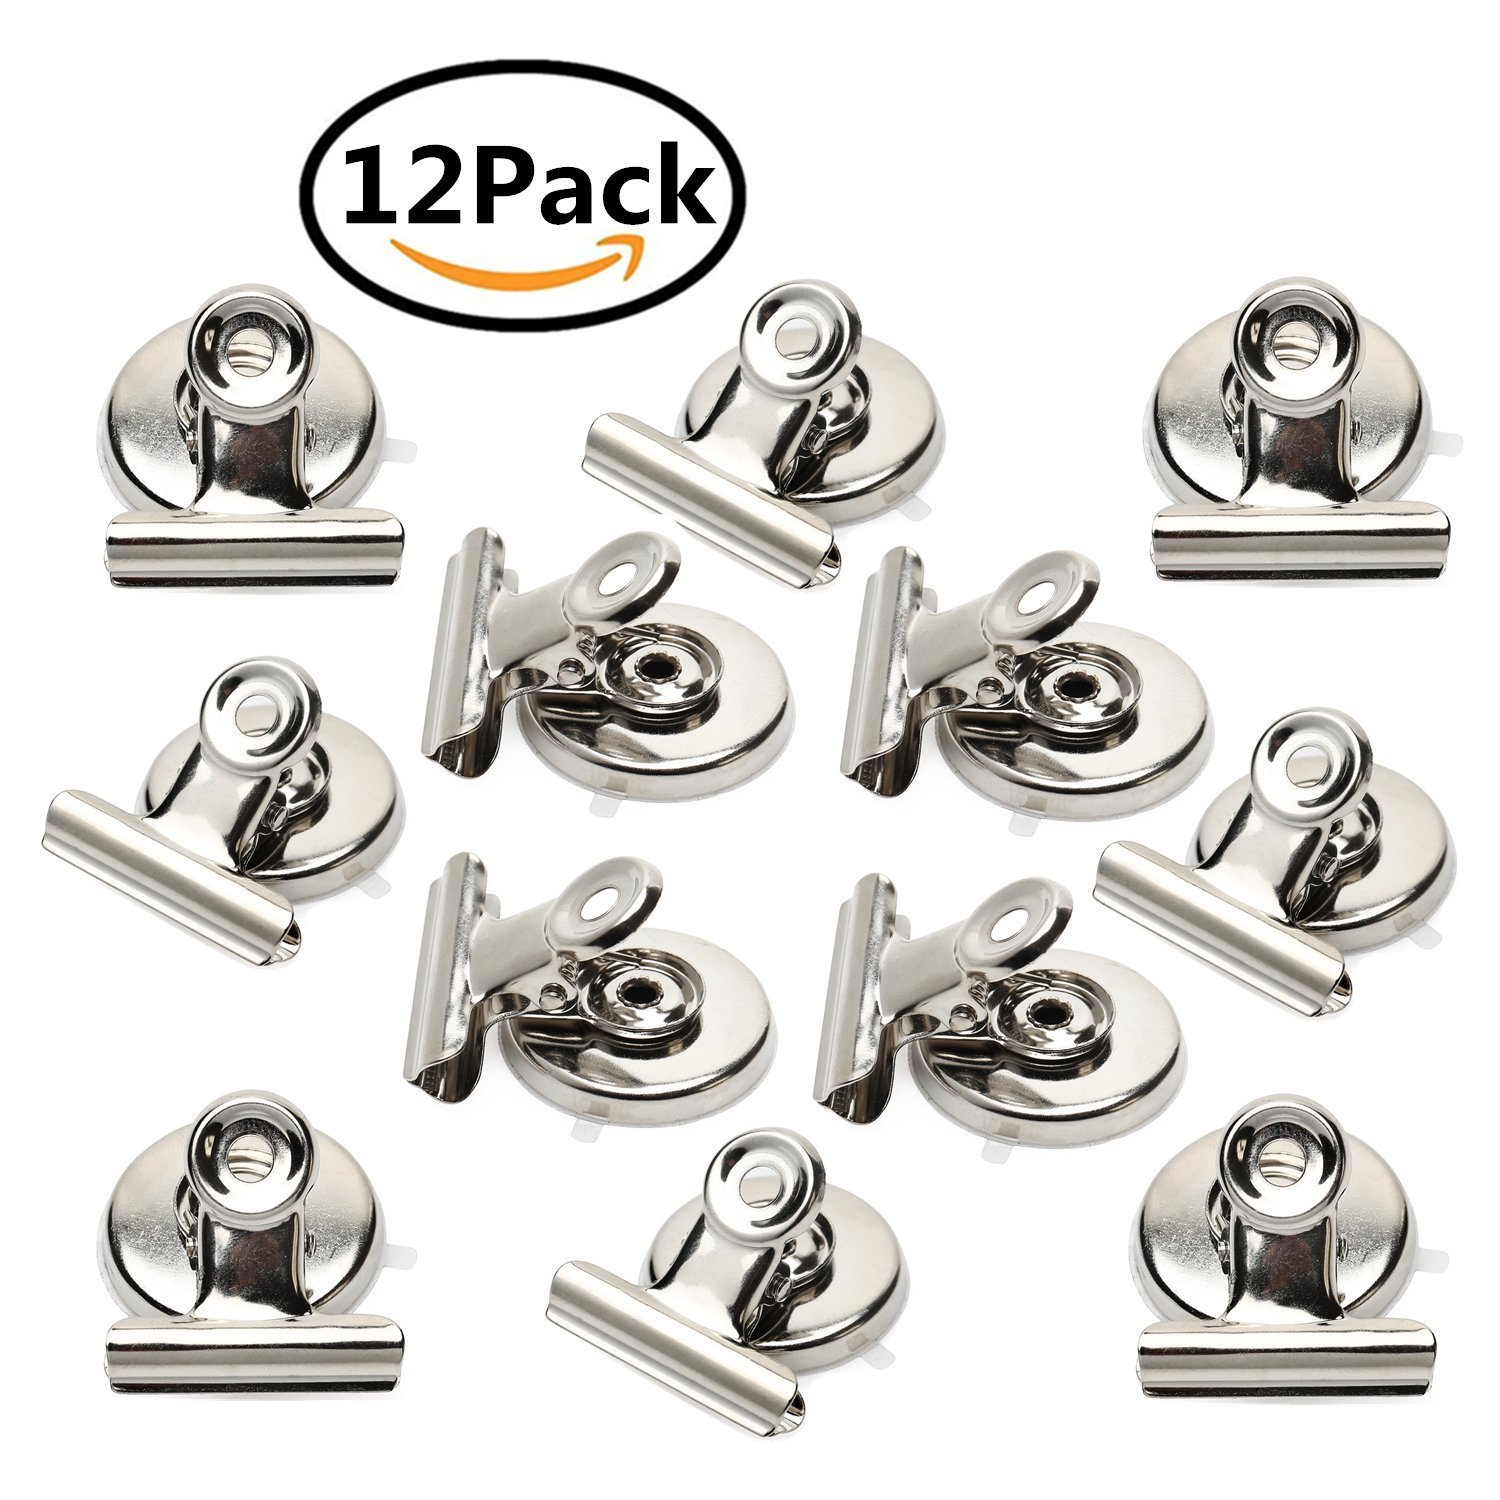 Strong Magnetic Clips - Heavy Duty Refrigerator Magnet Clips - 31mm Wide Scratch Safe - Clip Magnets Best for House Office School Use(12Pack) by Ninth Five